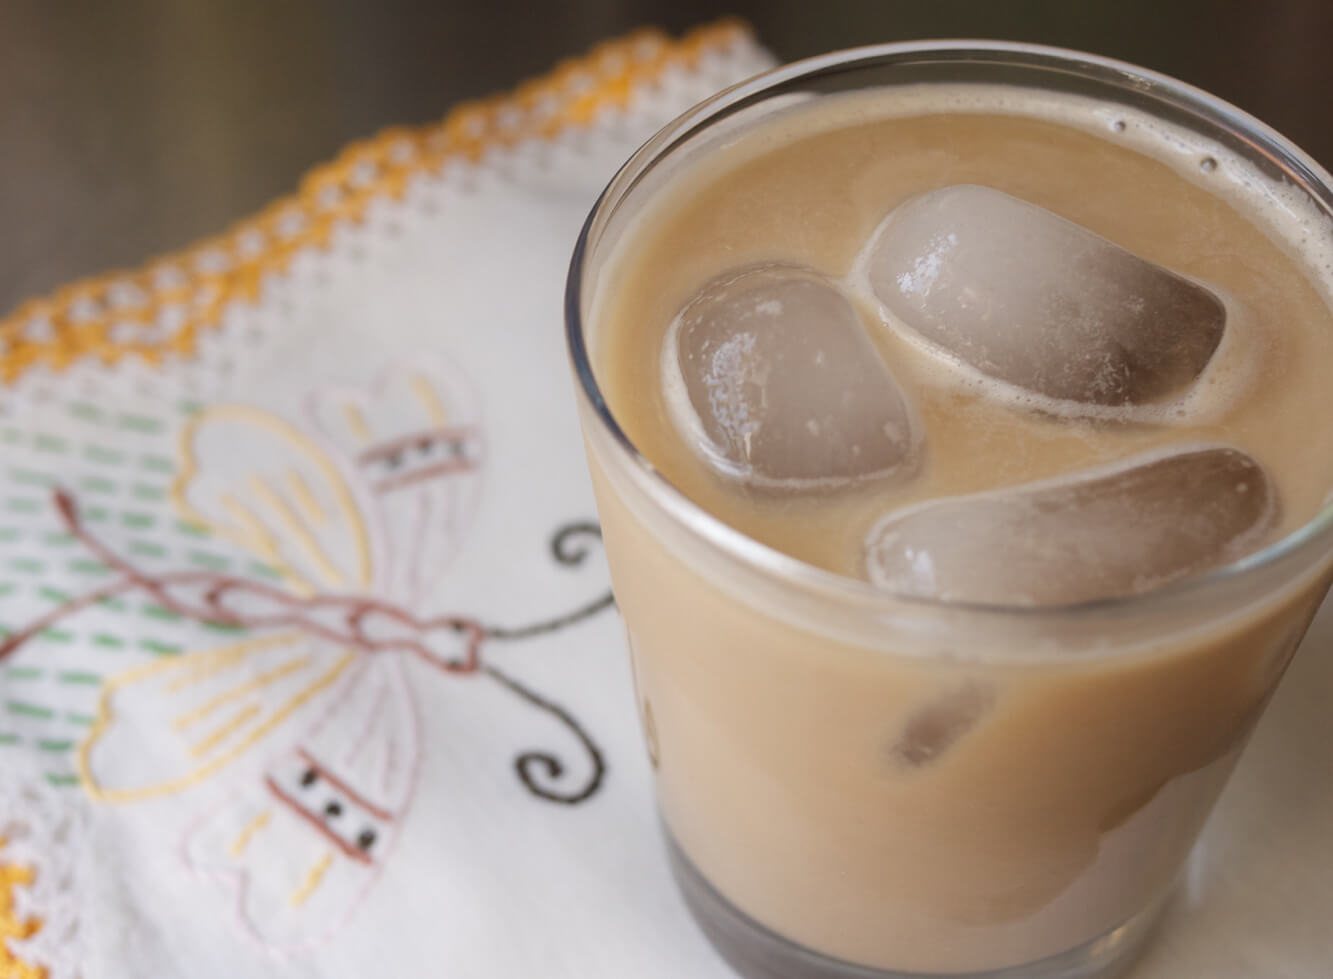 Coffee-Cinnamon Horchata (Almond-Rice Milk)